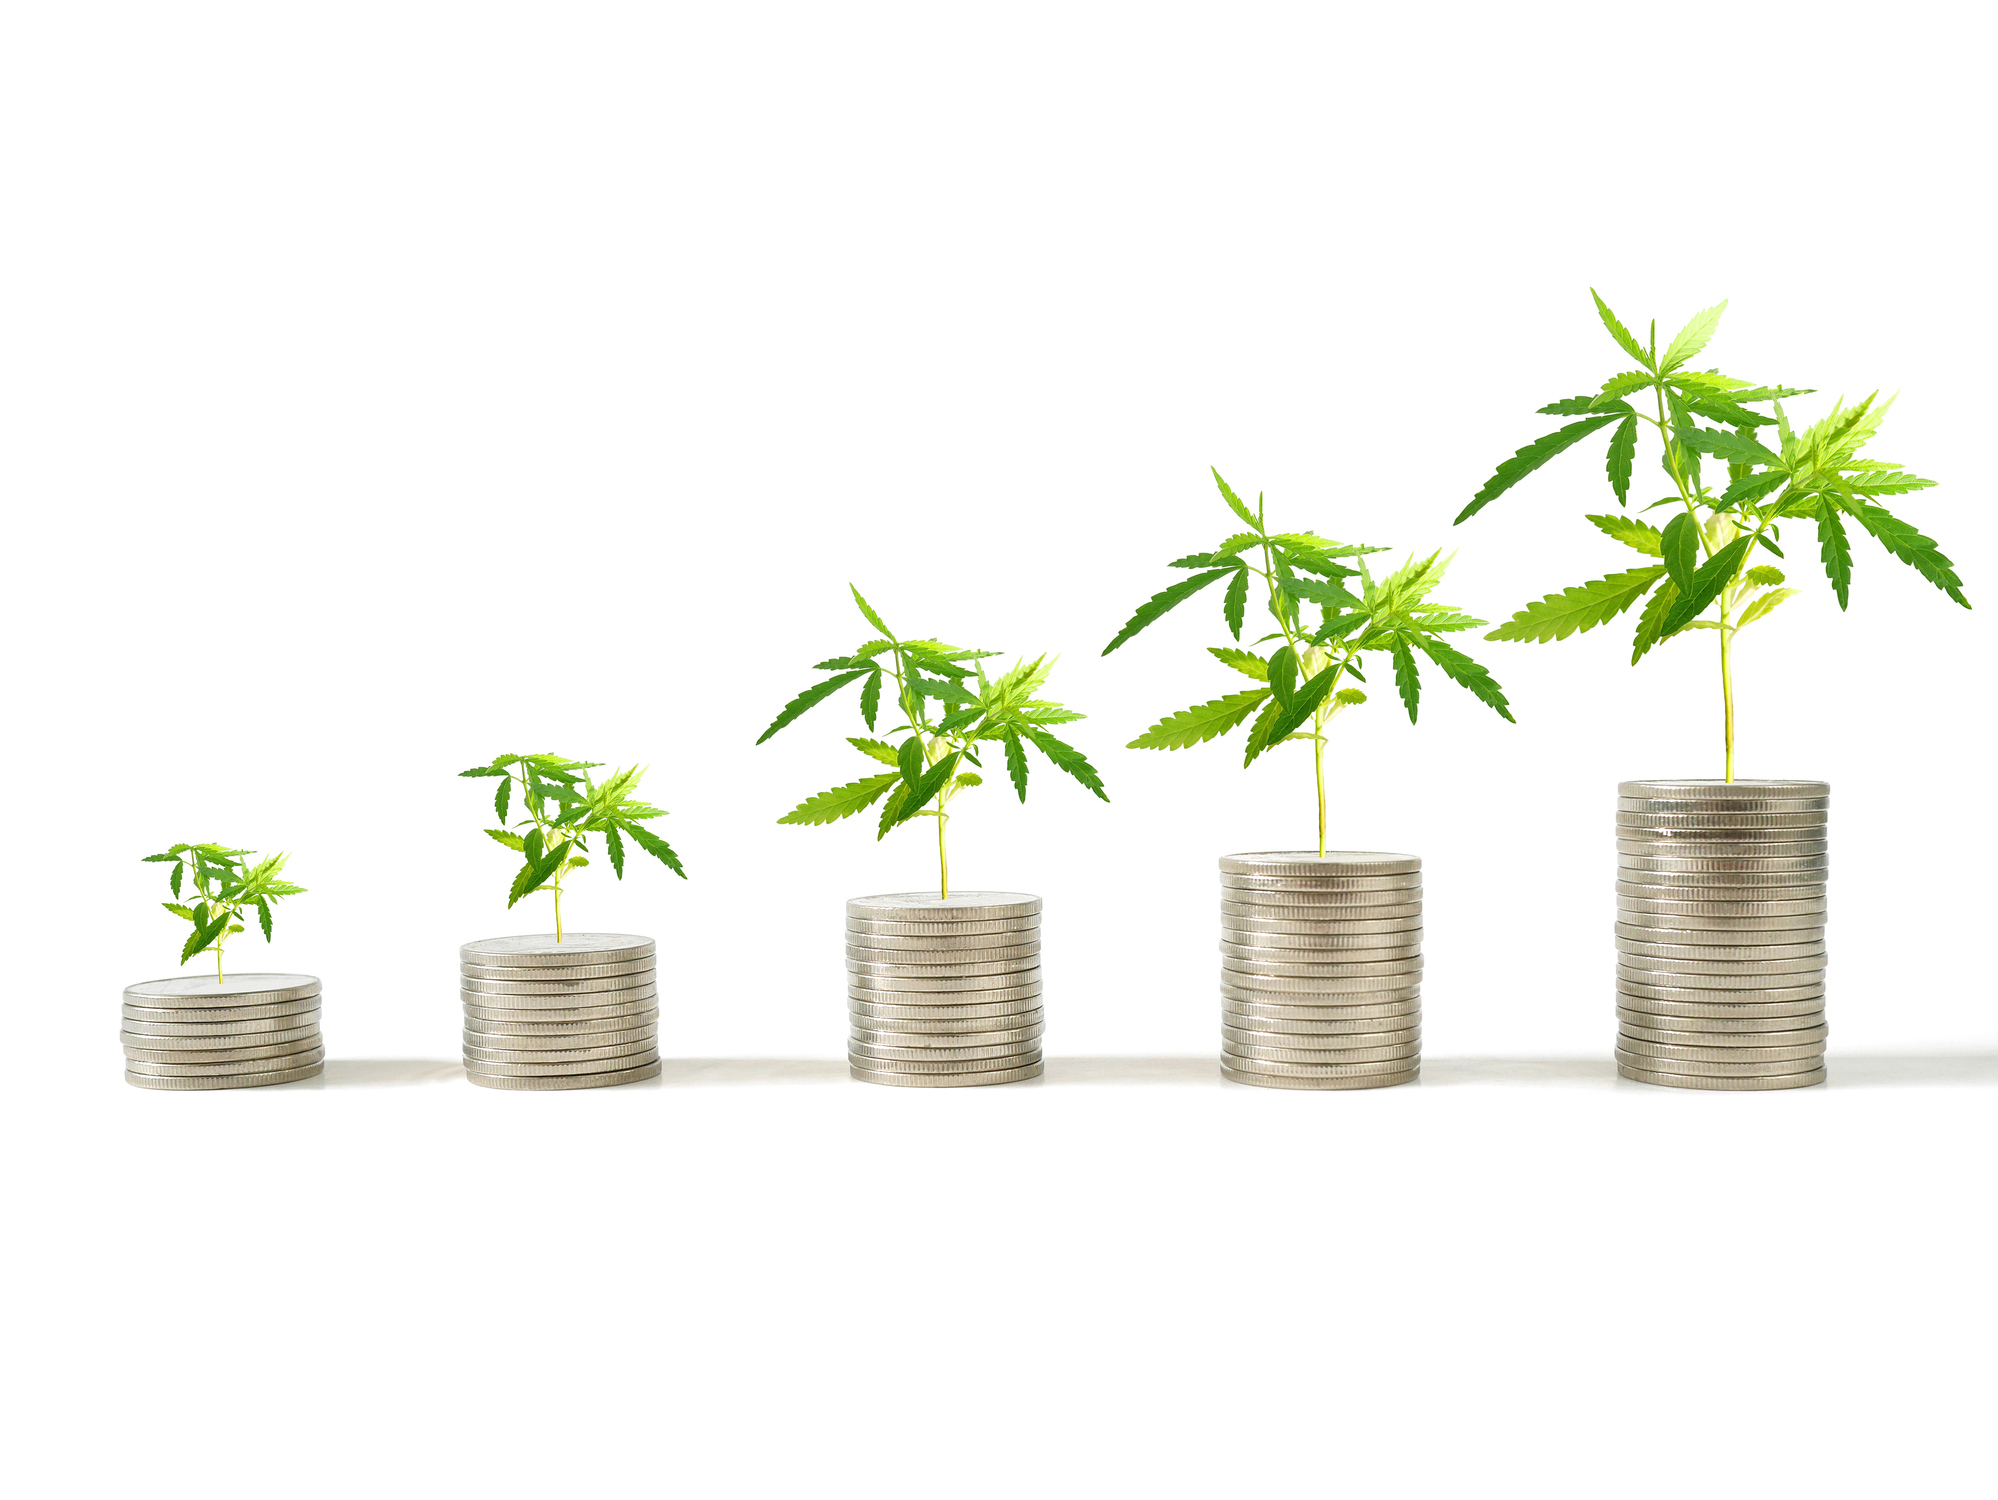 The Cannabis Industry is Growing and So Are the Fines: Learn How You Can Upgrade & Safeguard Your Business with Identity Verification